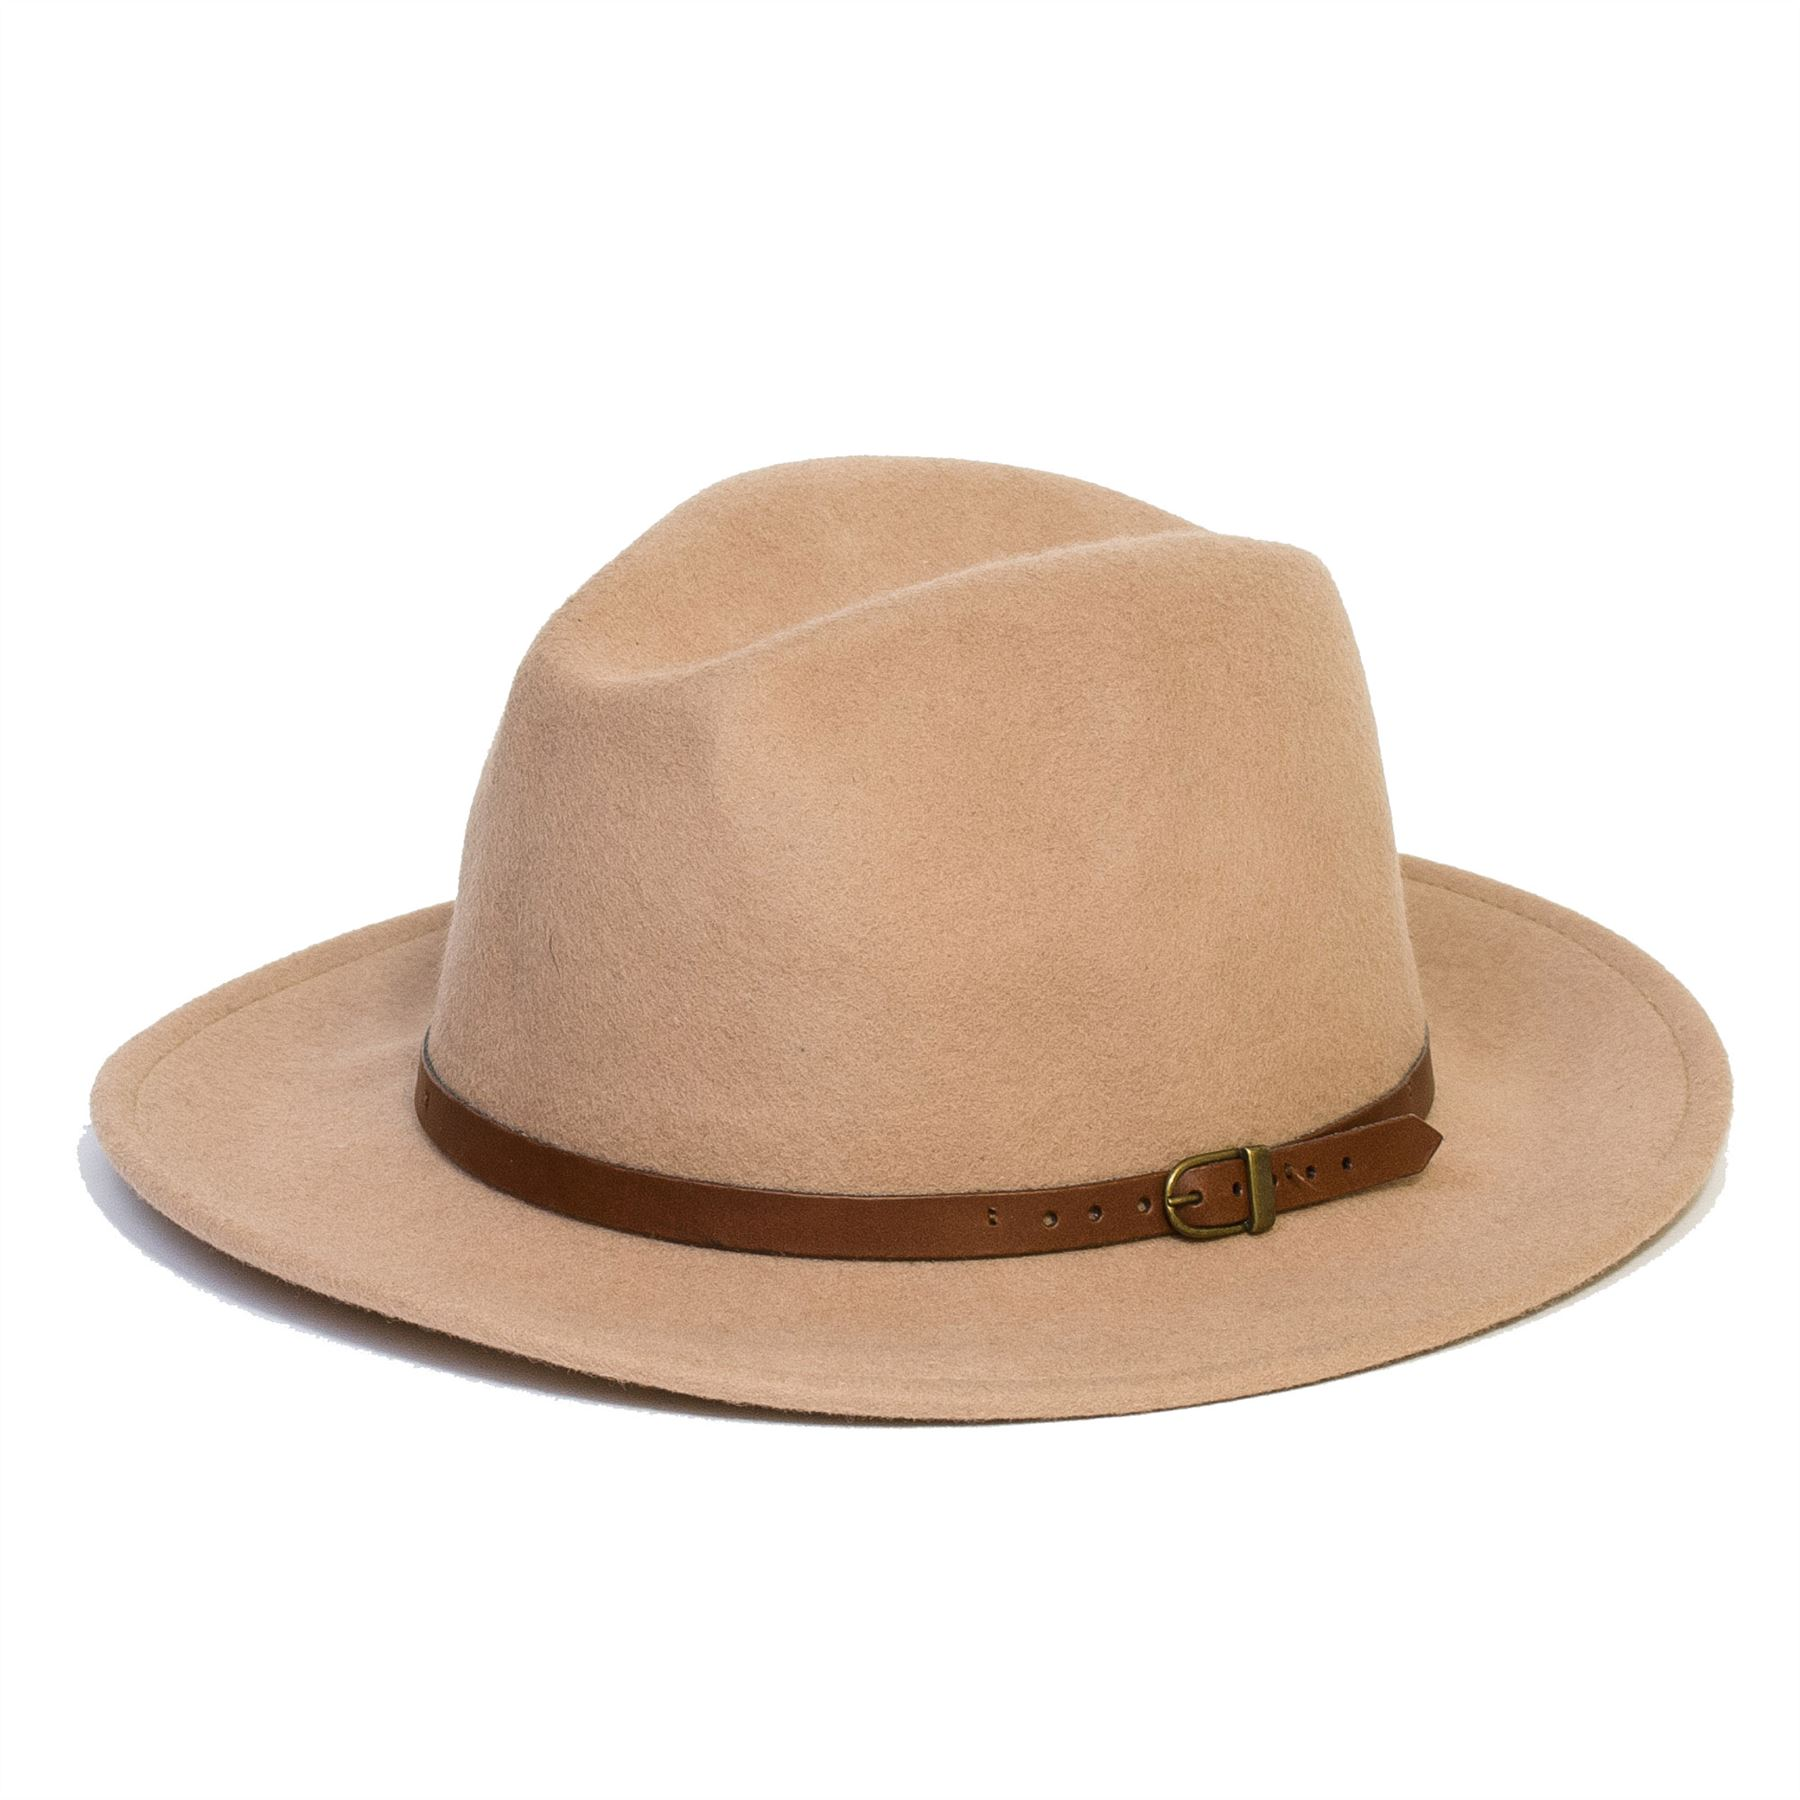 Shop for Men's Hats at REI - FREE SHIPPING With $50 minimum purchase. Top quality, great selection and expert advice you can trust. % Satisfaction Guarantee.